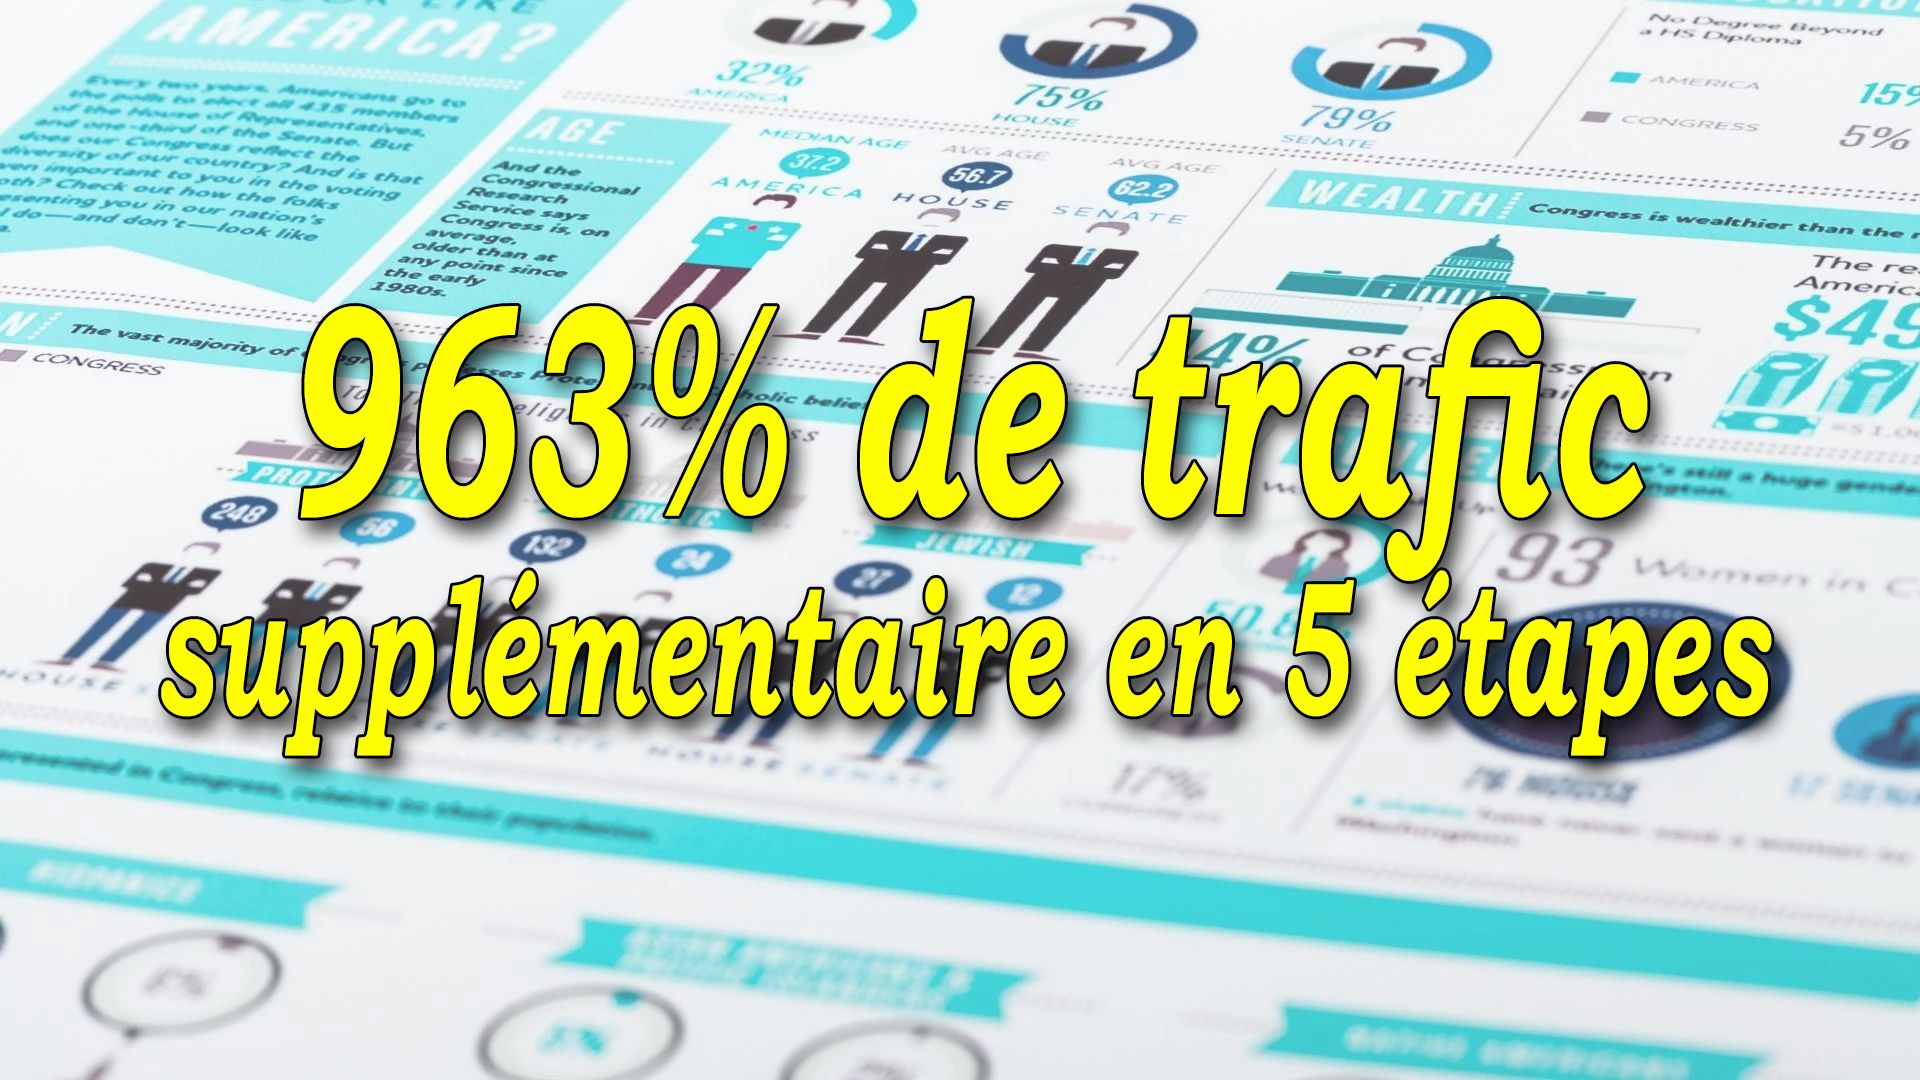 963% de trafic supplémentaire #GrowthHacking #WebMarketing #FormationGrowthHacking #CentreDeFormationFrance #TunnelAARRR #AARRR #SocialMedia #CommunityManagement #SEO